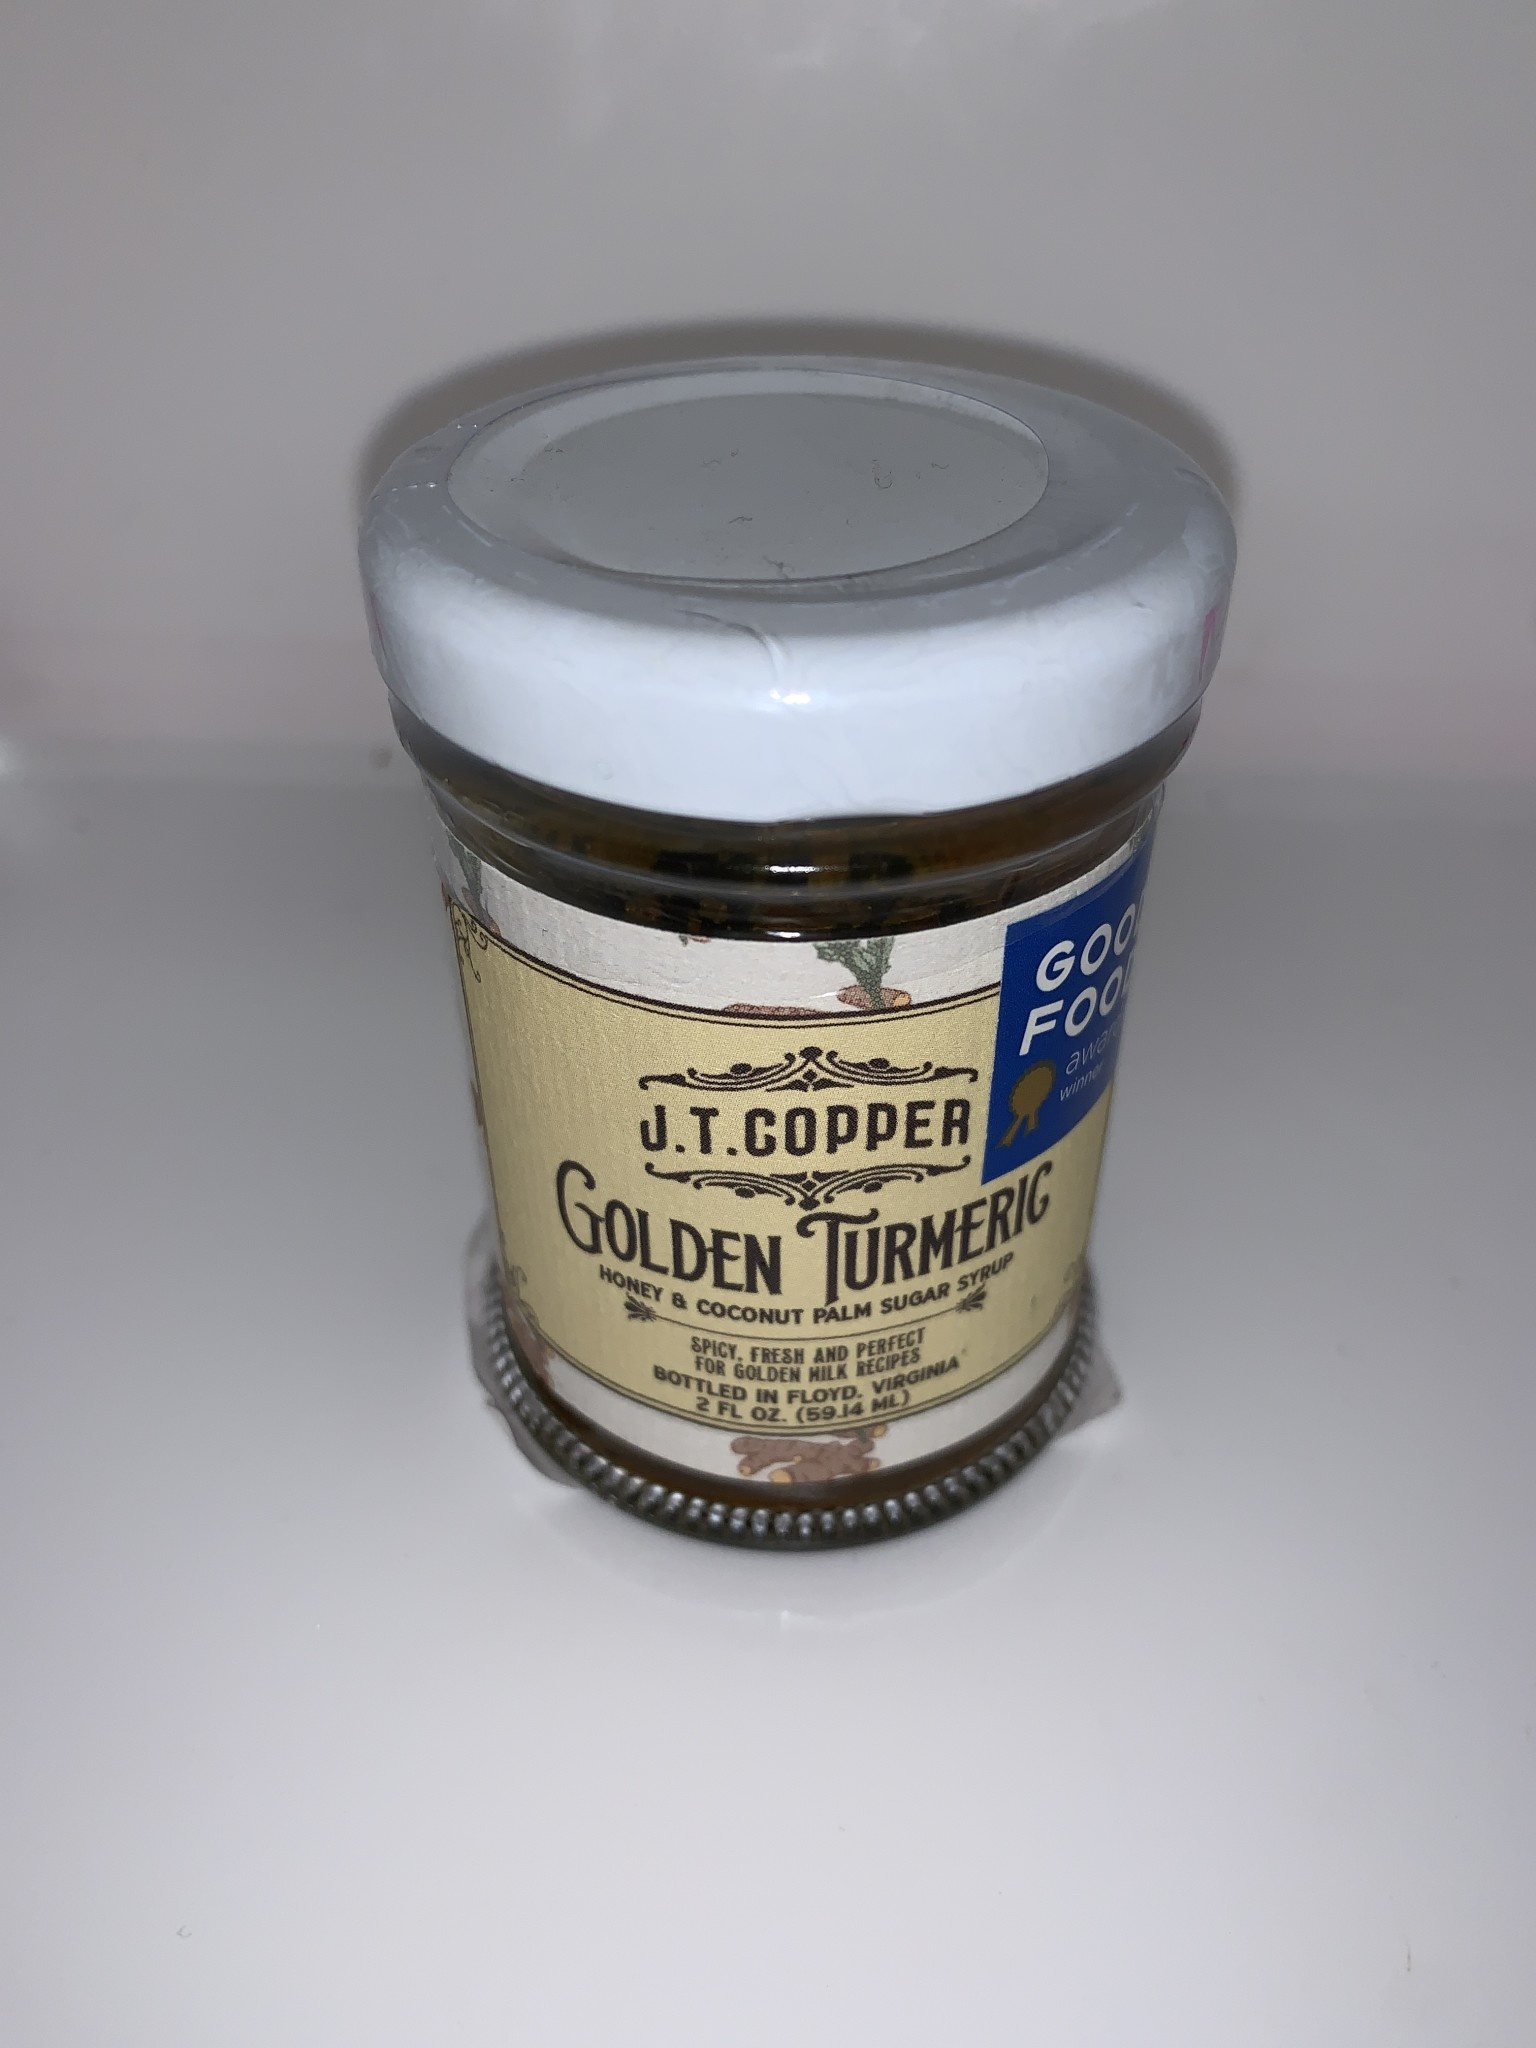 JTC Golden Turmeric Cane Syrup